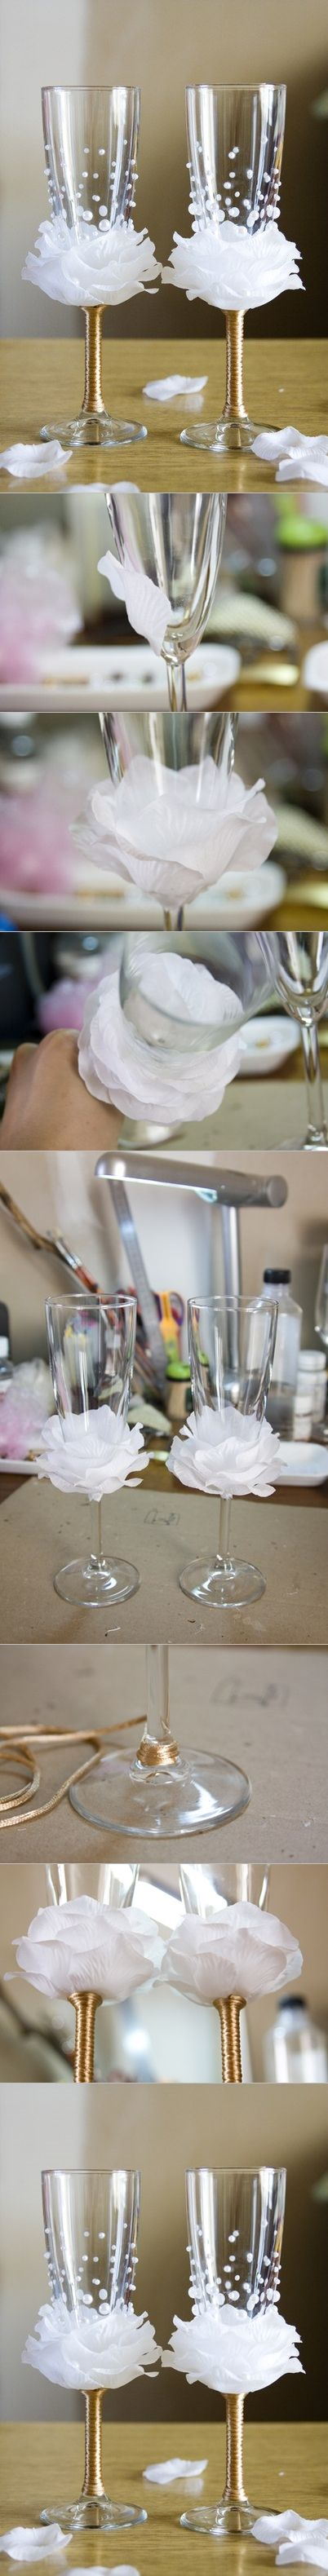 wine glass decor tutorial